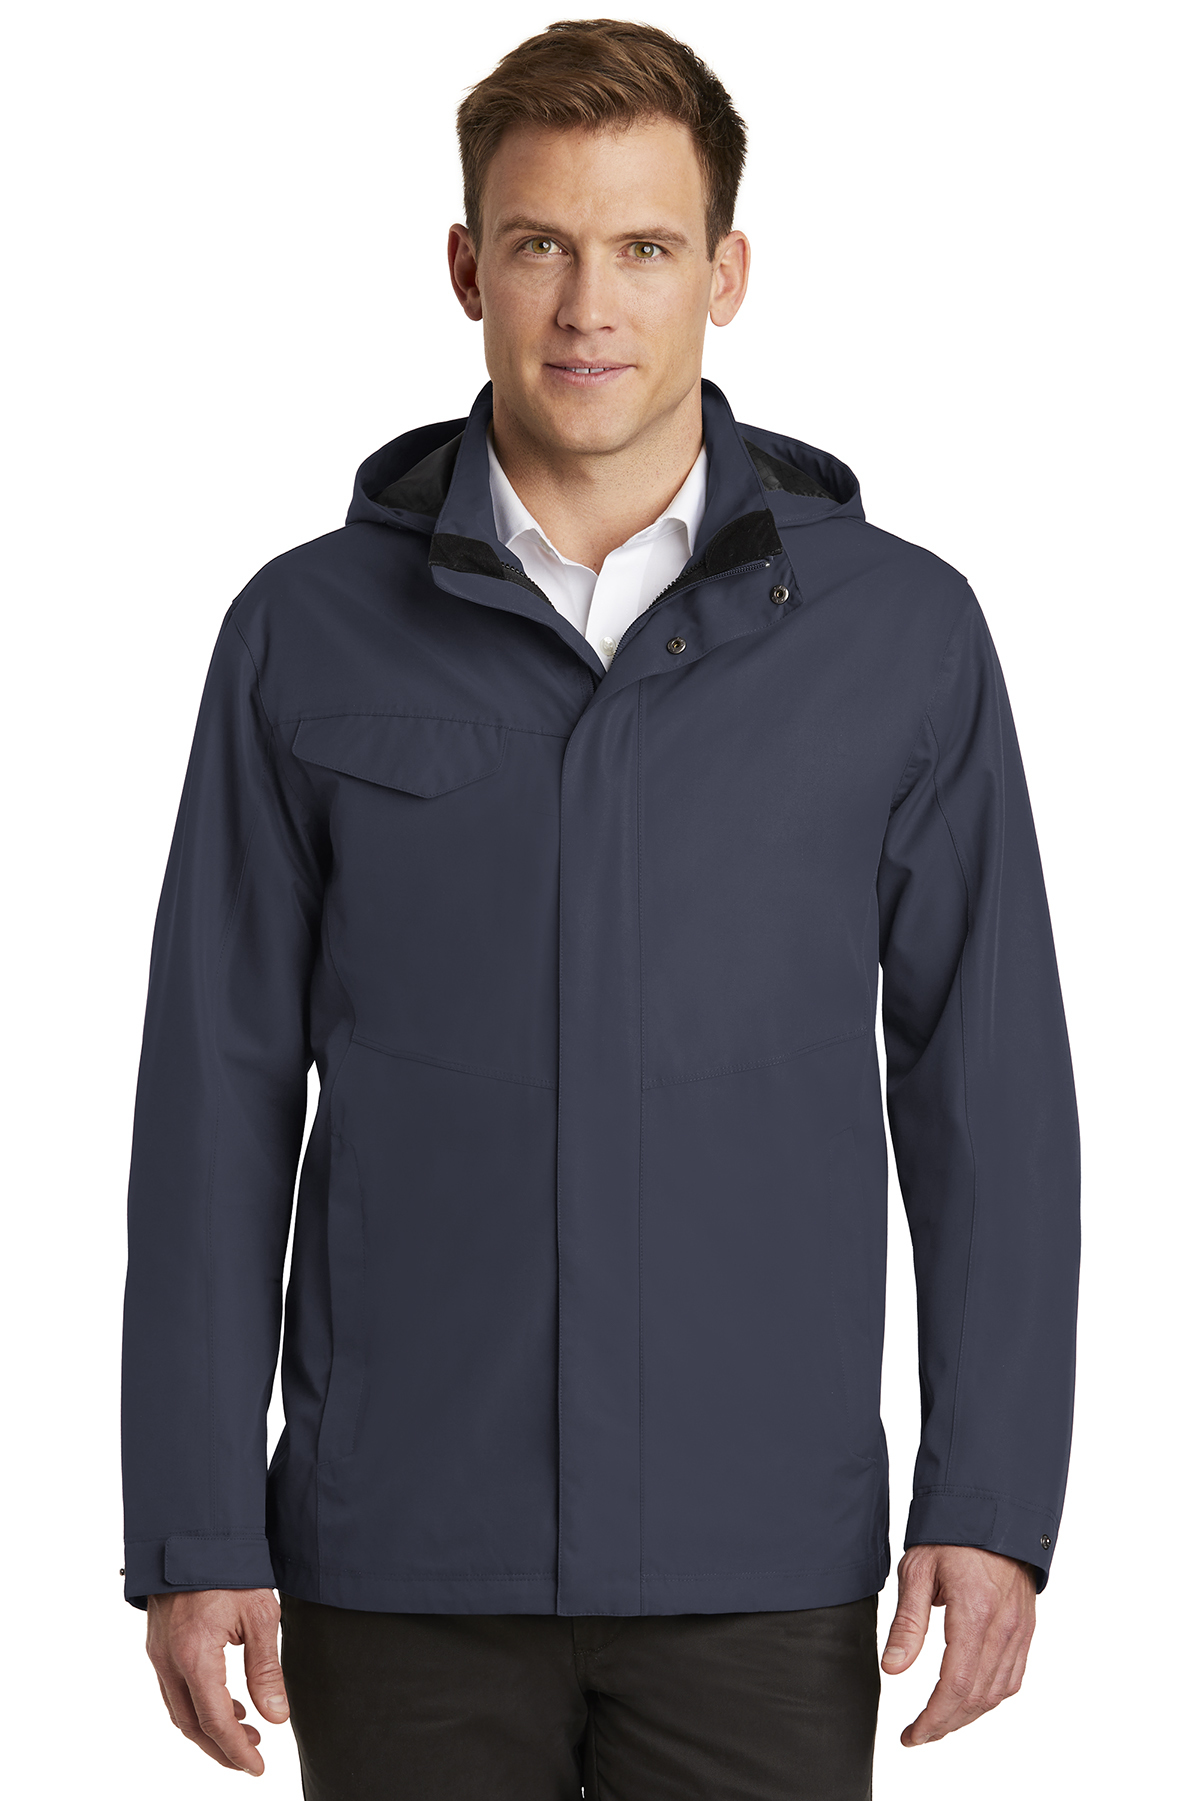 Port Authority J900 - Men's Collective Outer Shell Jacket